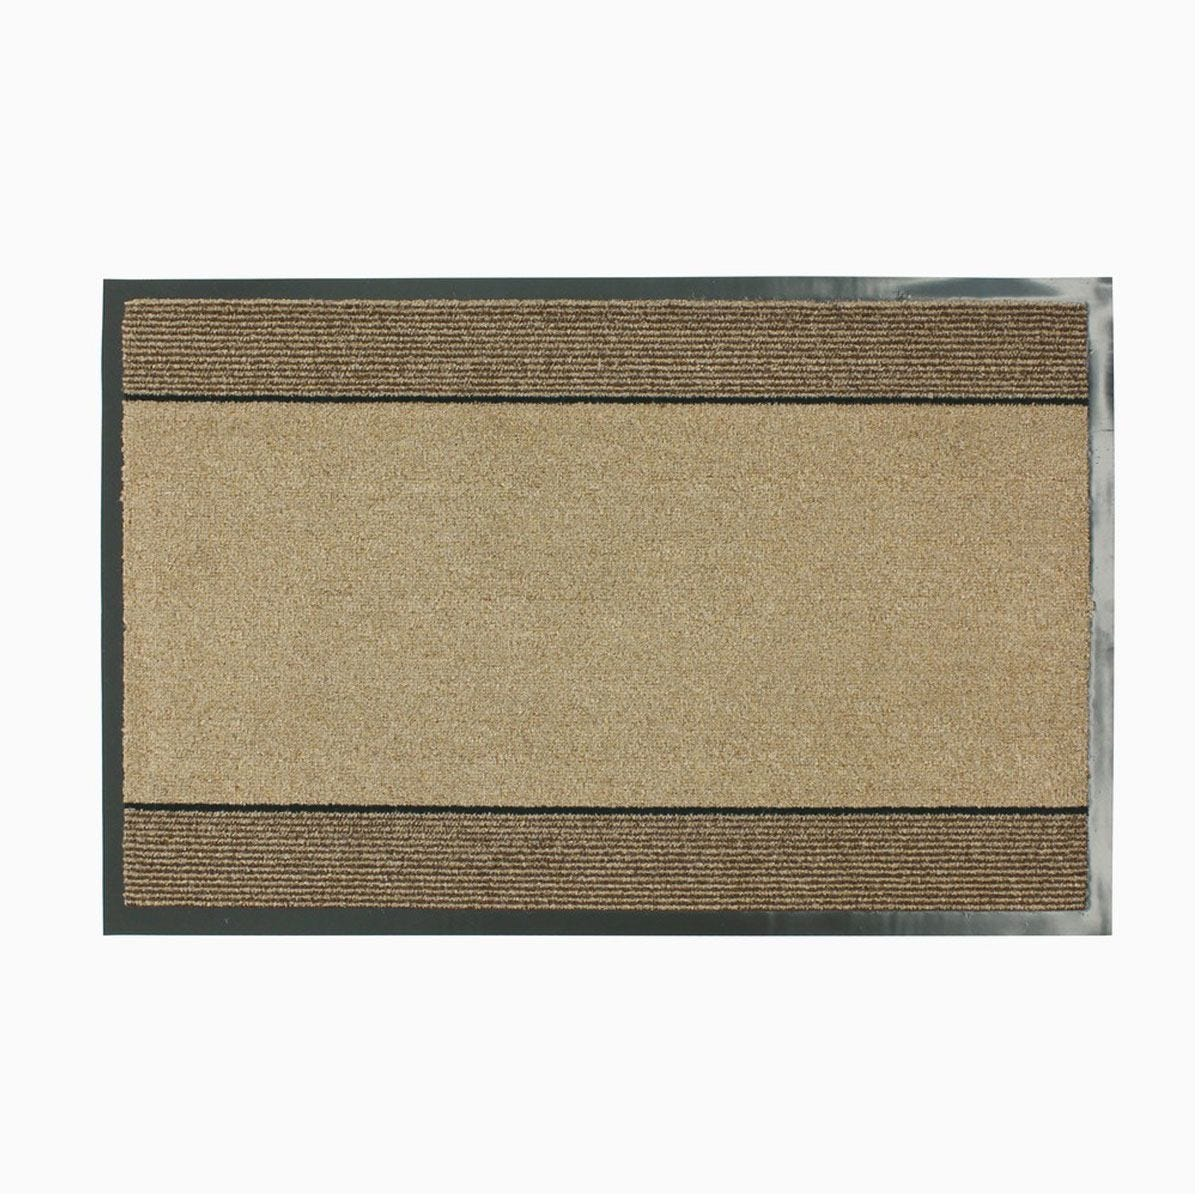 JVL Miracle Barrier 40 x 60cm Striped Door Mat - Beige/Brown